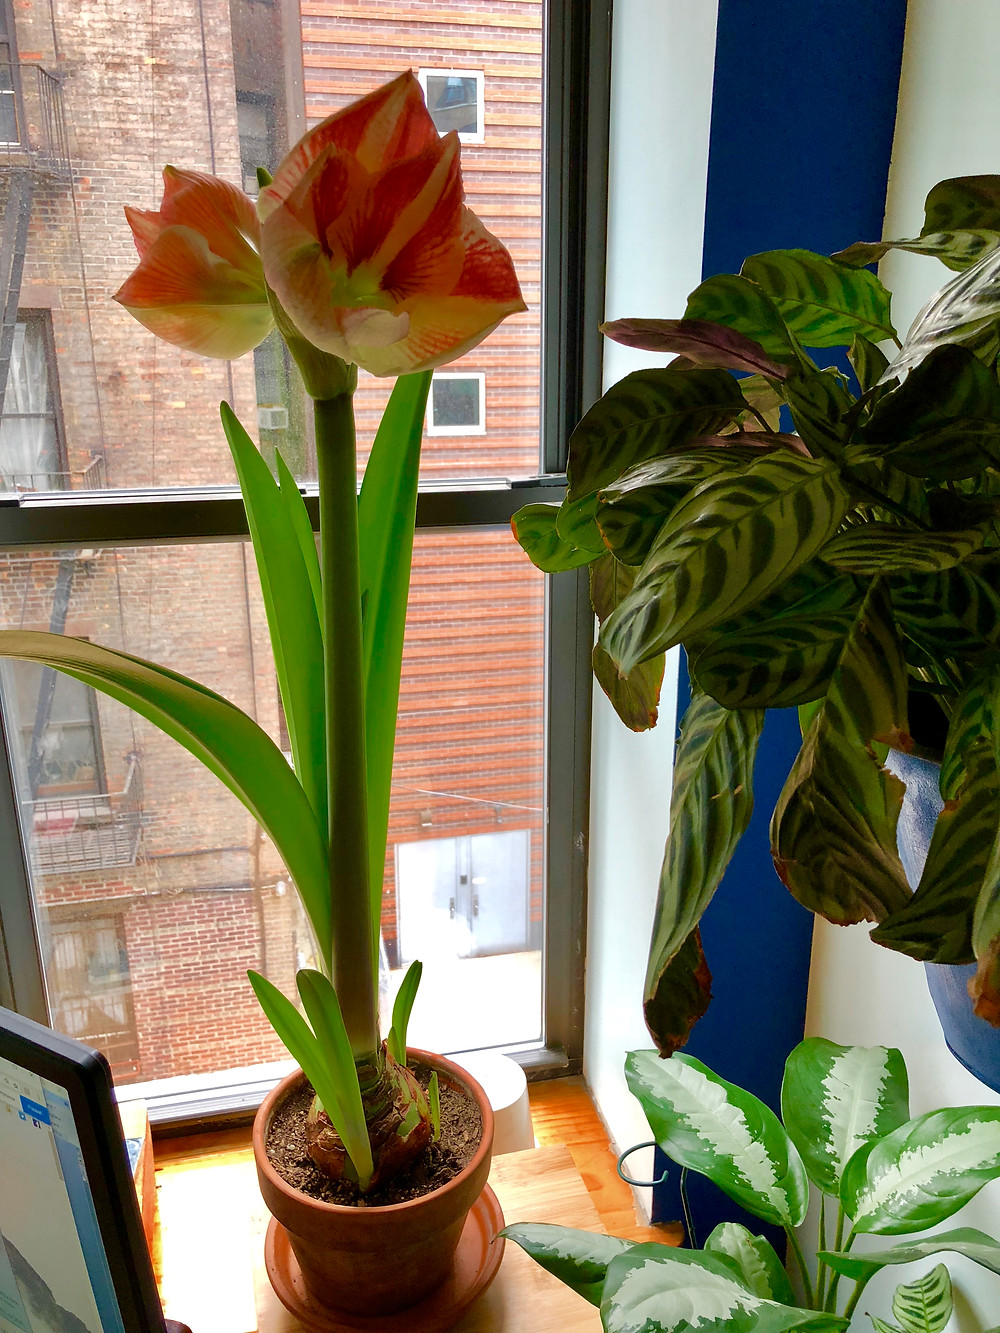 Amaryllis calathea late-bloomer in March NYC fire escape